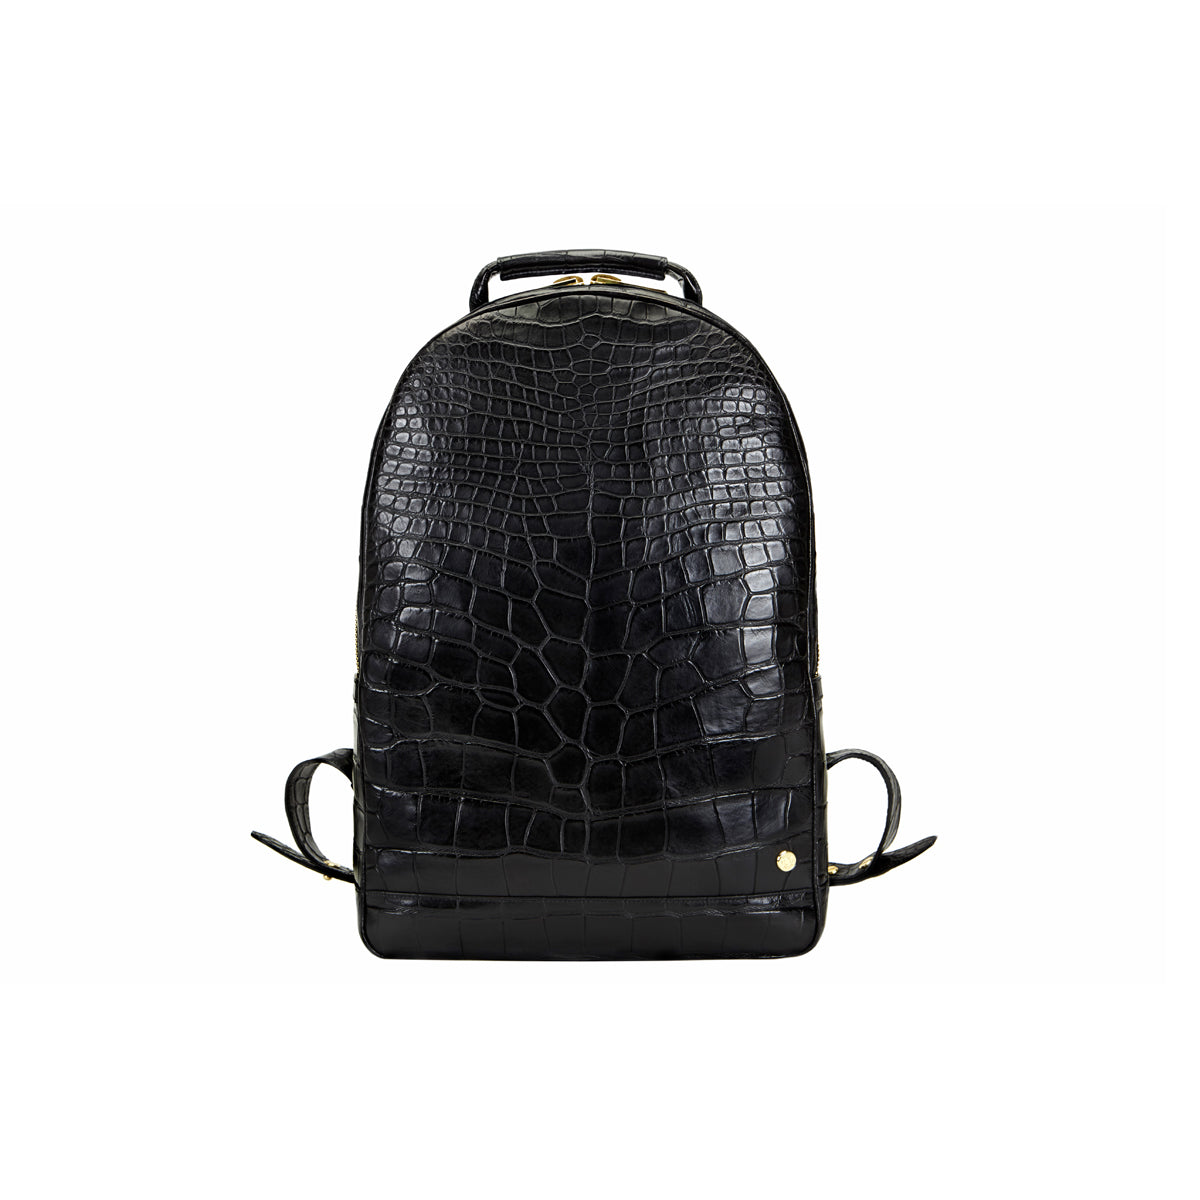 collections/stalvey-brighton-flat-front-backpack-large-black-alligator-front.jpg